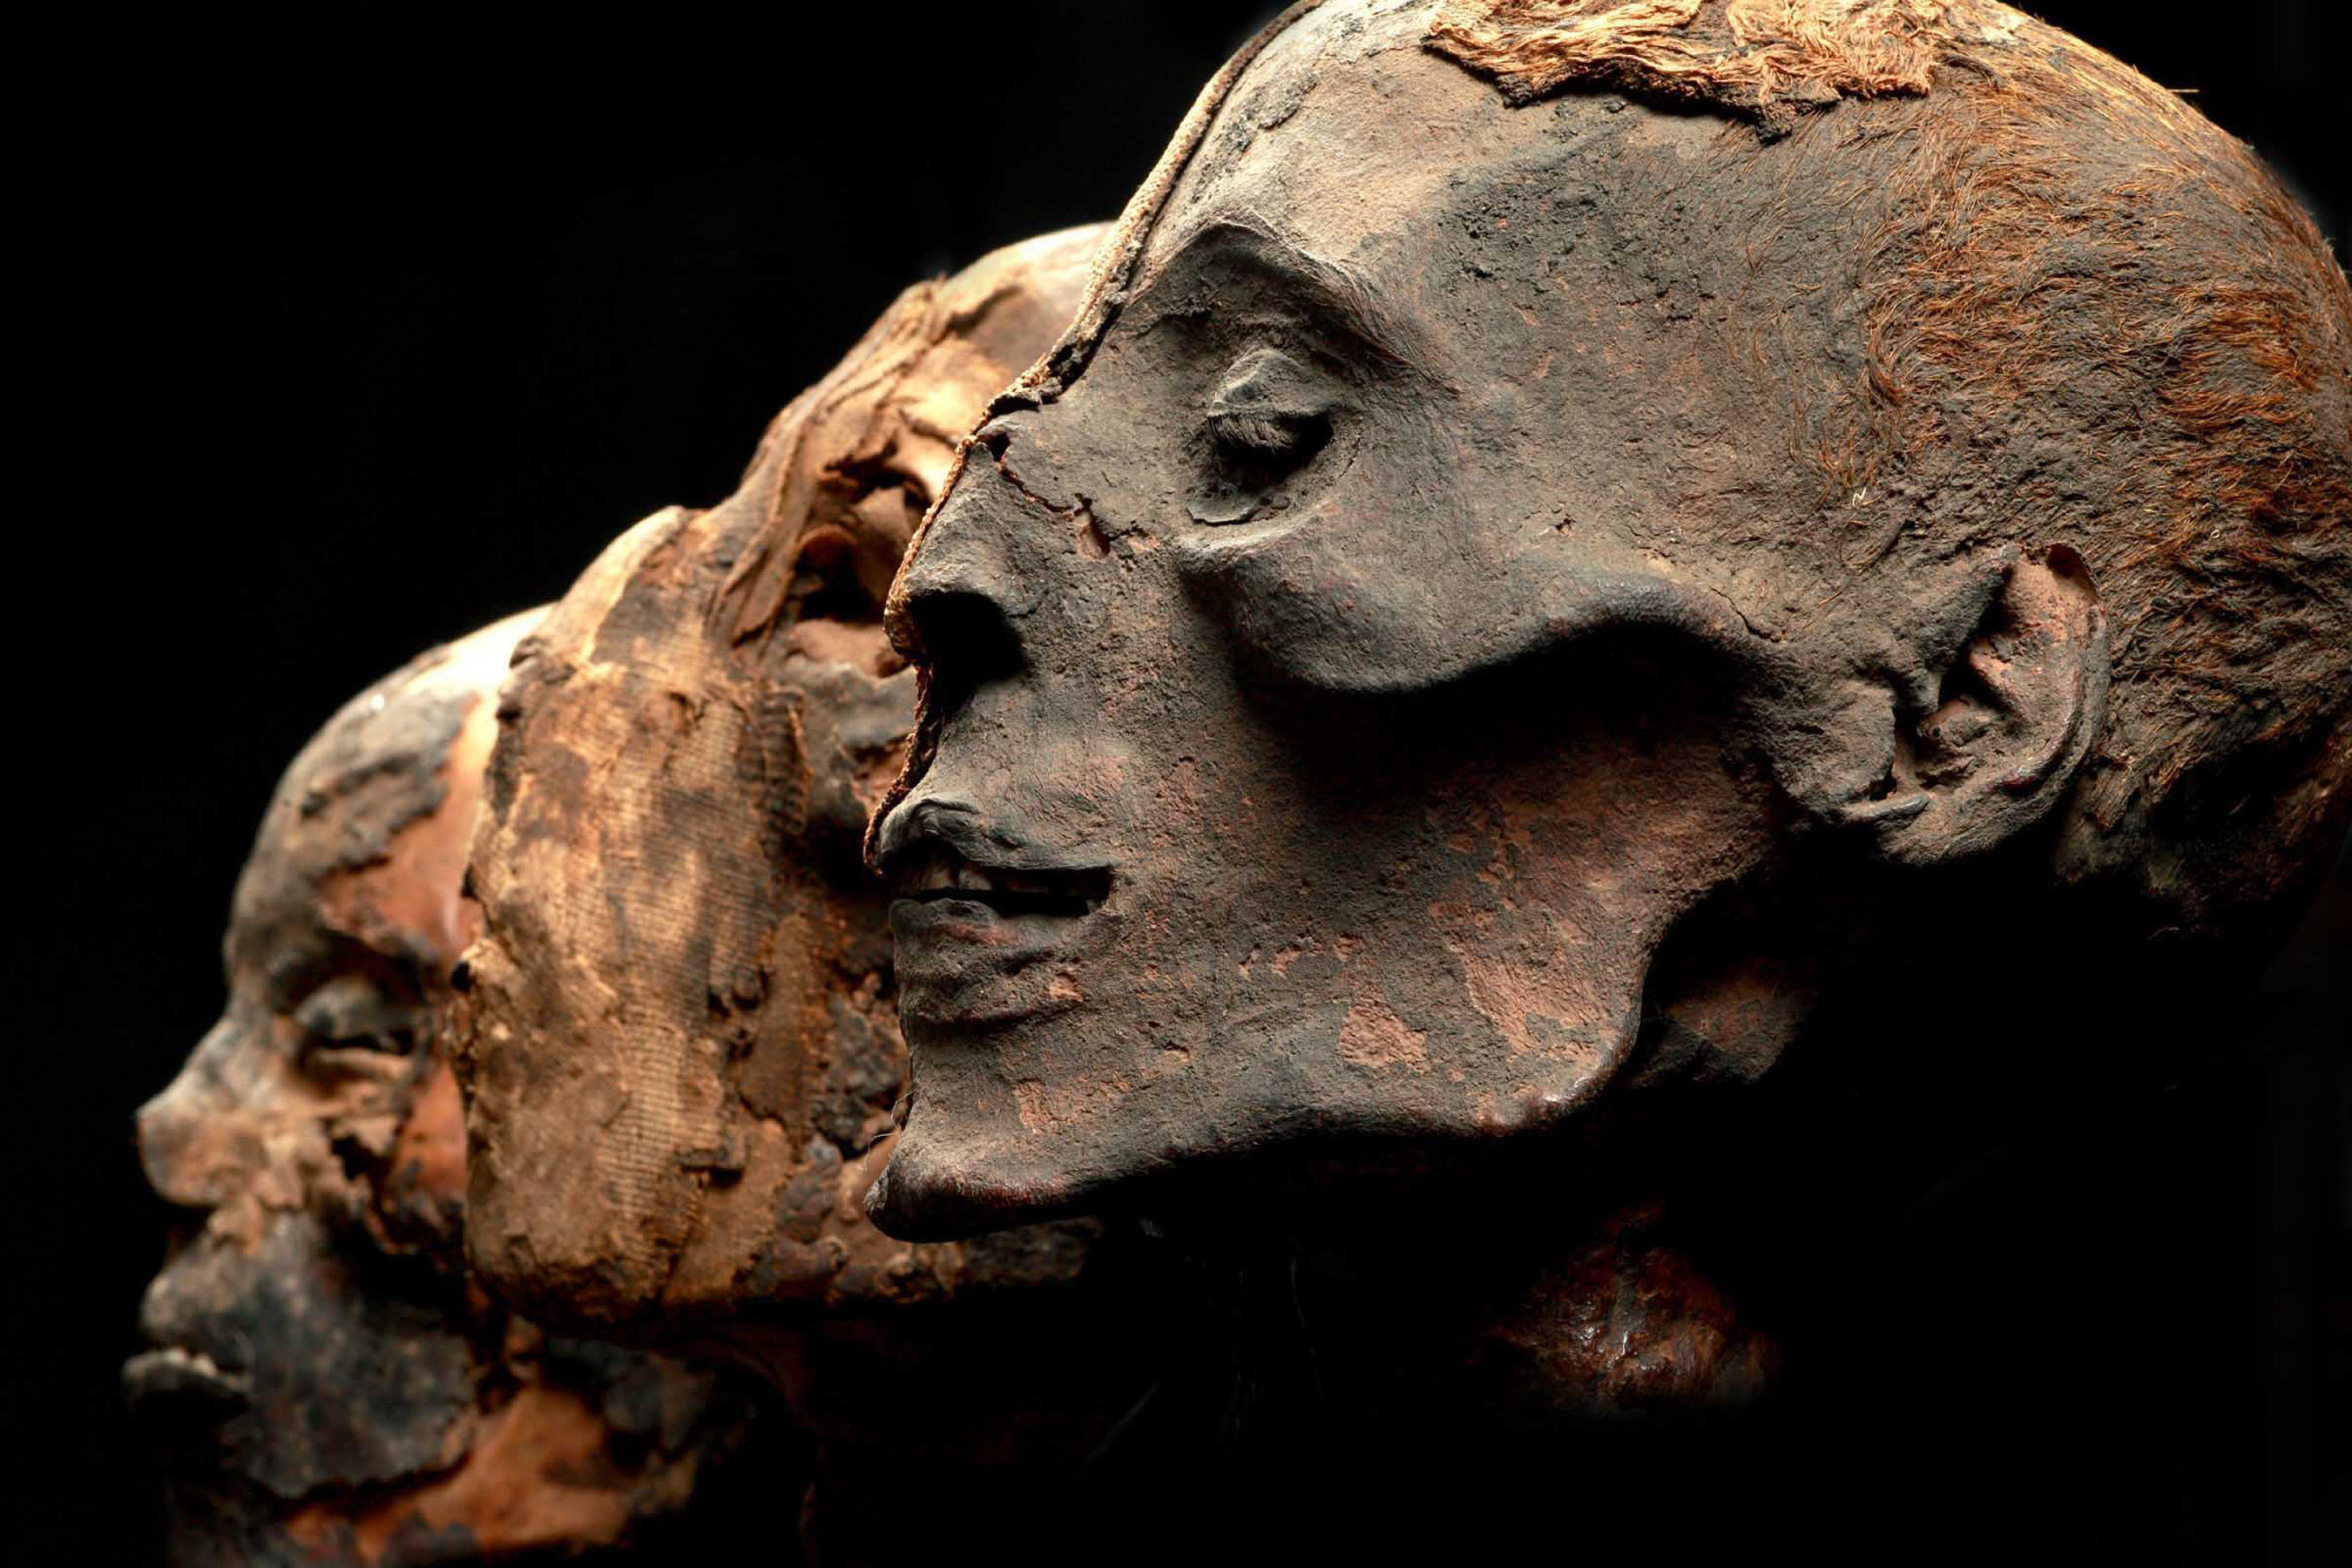 Mummies Of The World Exhibition To Open September 28 In Baltimore At The Maryland Science Center